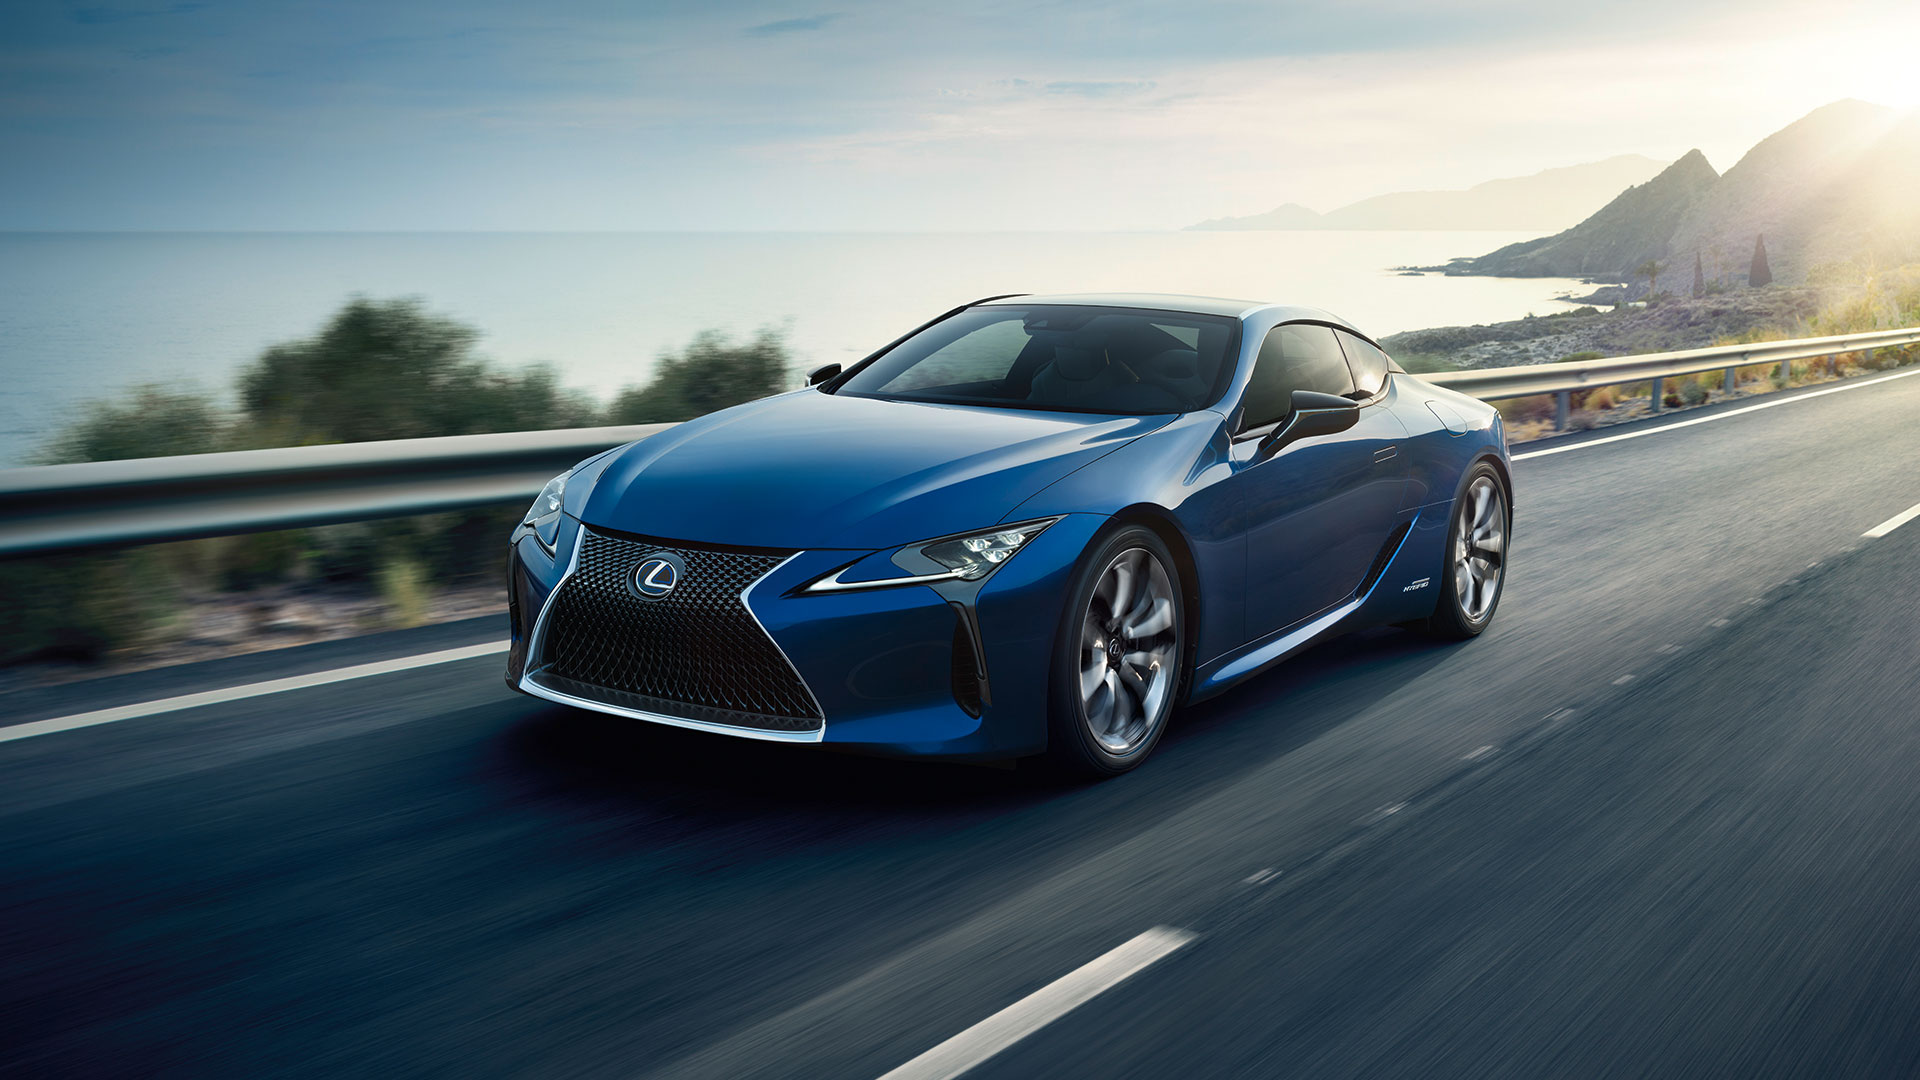 2018 lexus lc 500h blue next steps personalise 001